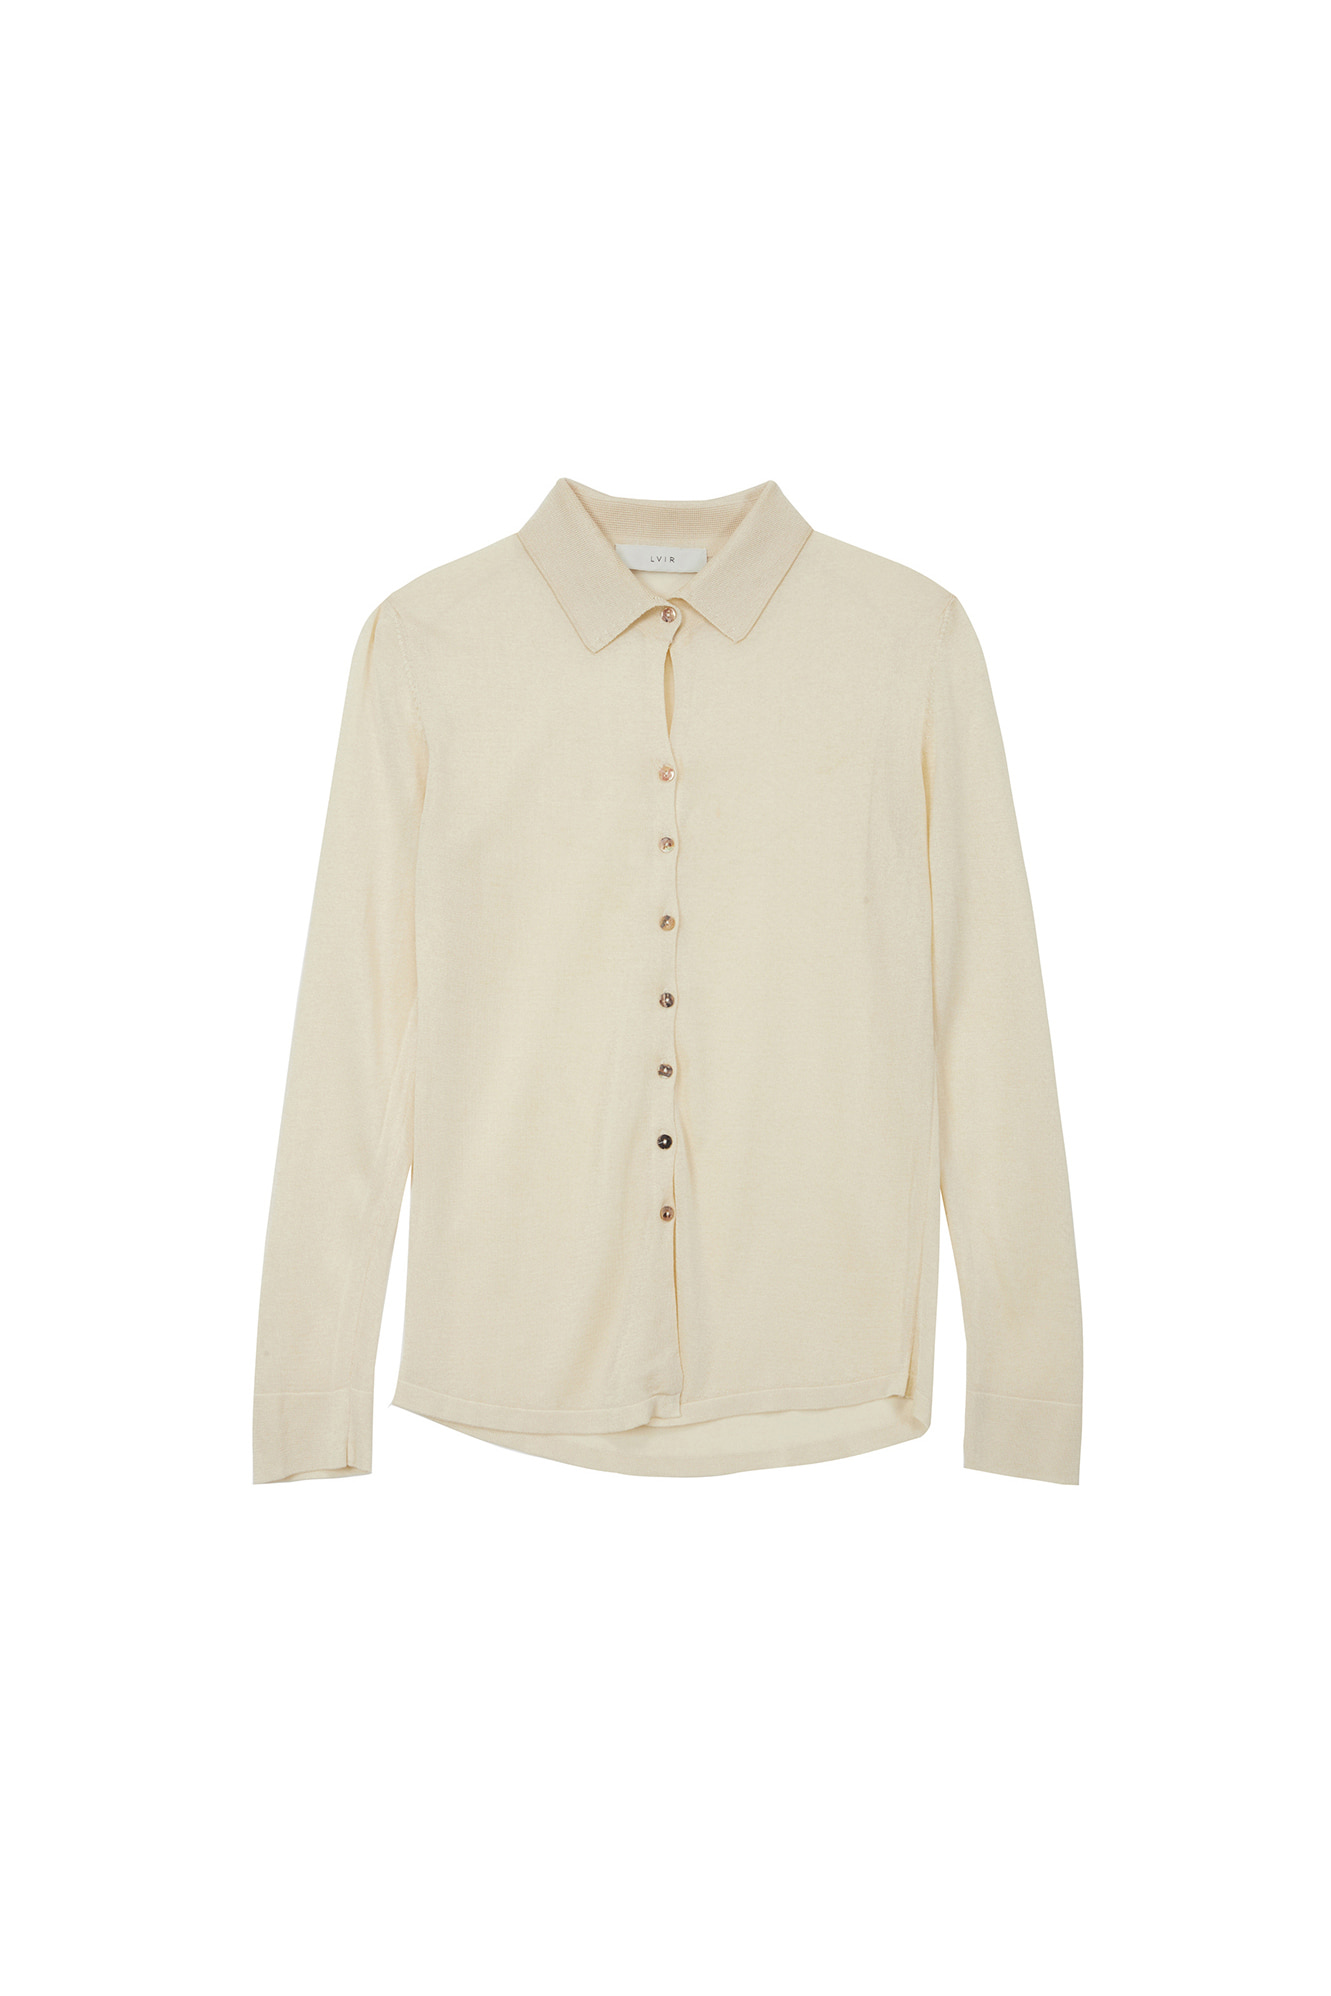 VISCOSE KNITED SHIRTS_LIGHT YELLOW